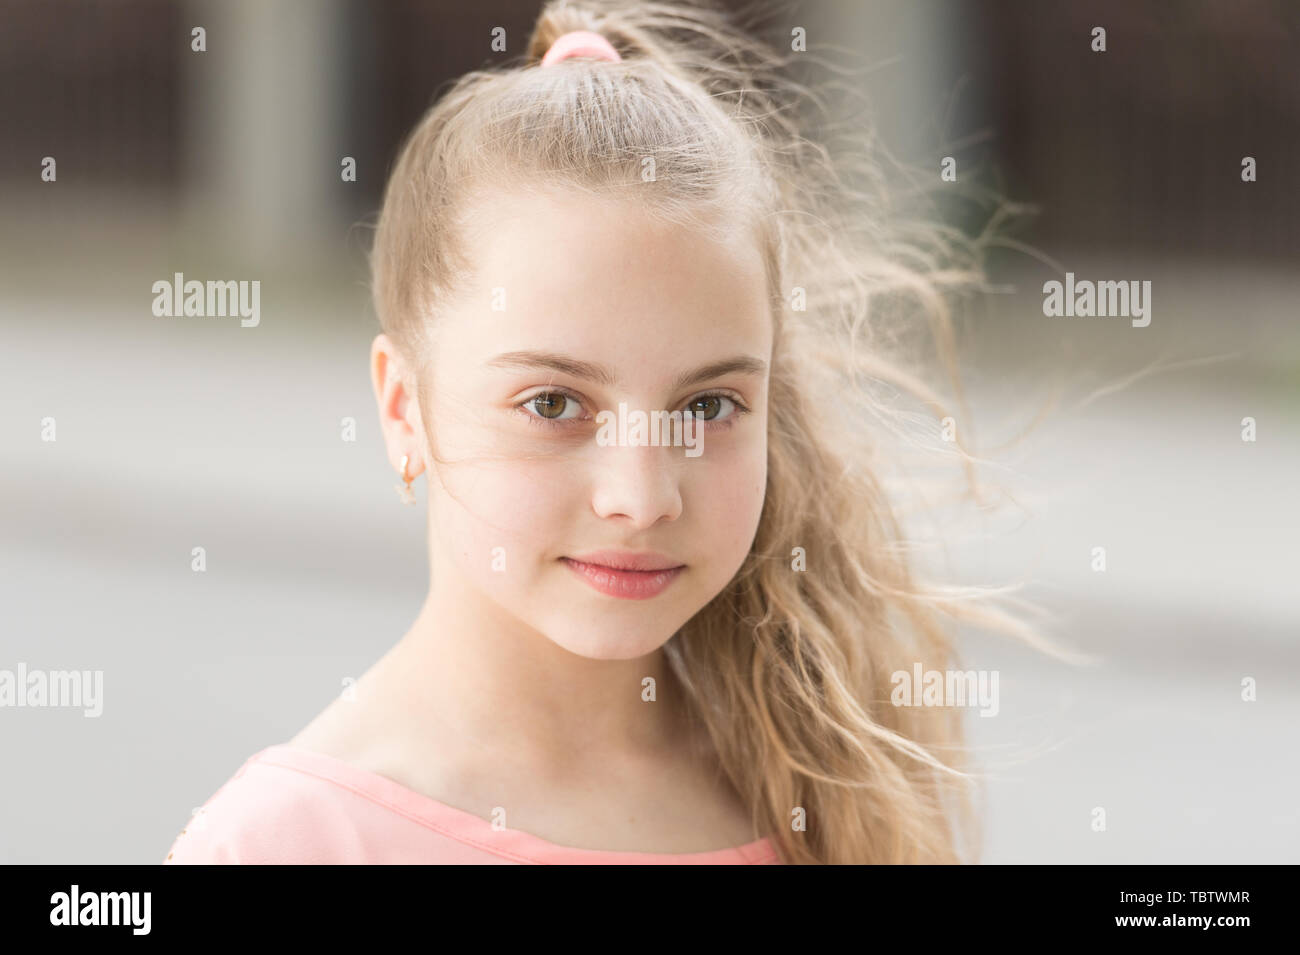 Organic skincare is like second nature. Adorable small girl with healthy young face skin, skincare. Beauty look of little skincare model. Childrens skincare products and cosmetics. - Stock Image